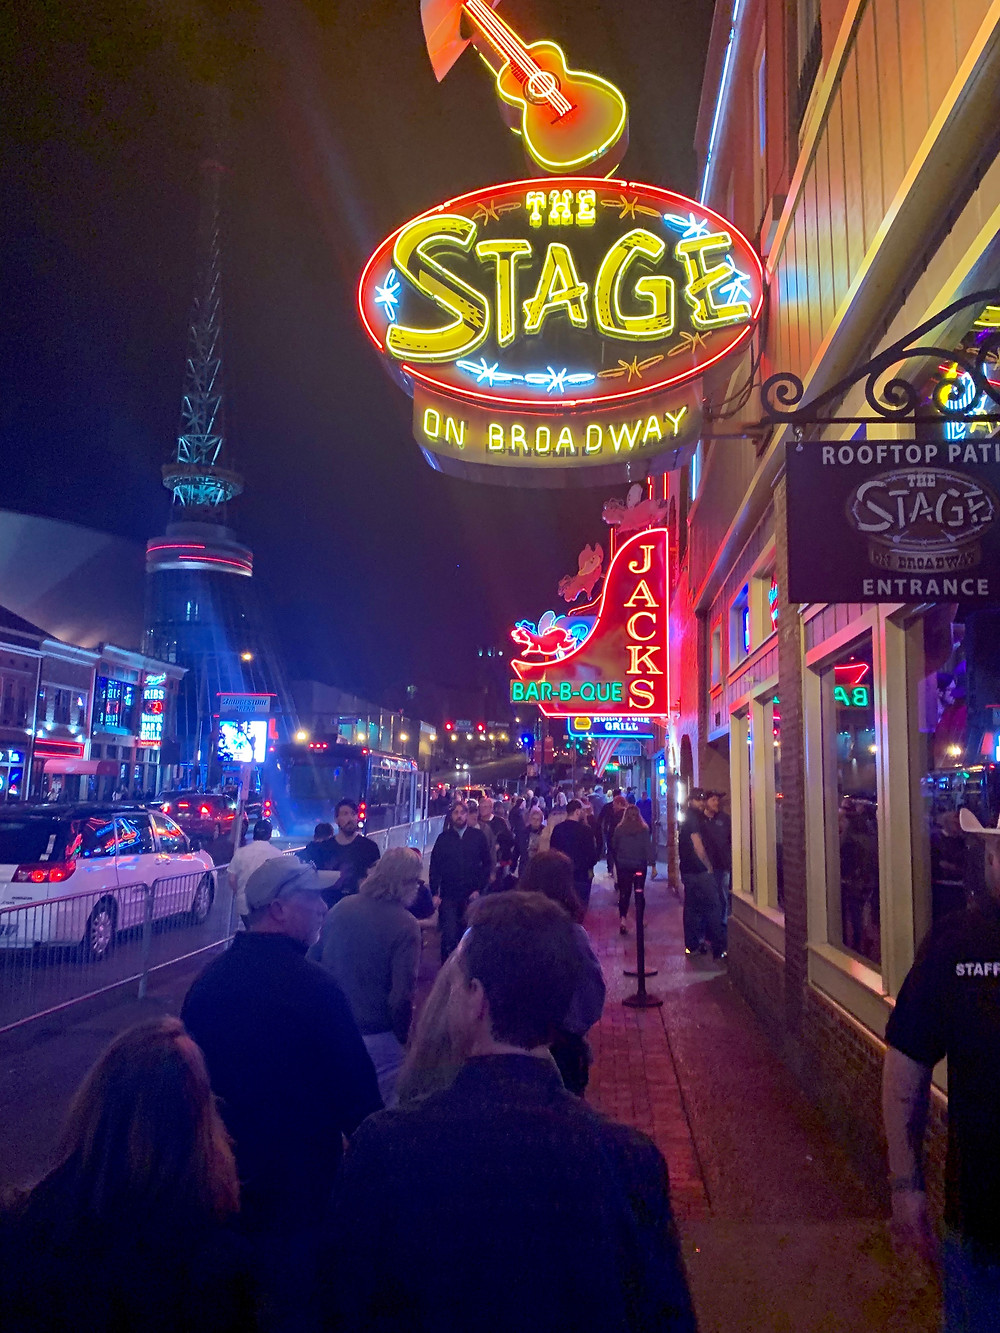 The Stage on Broadway  Nashville, TN